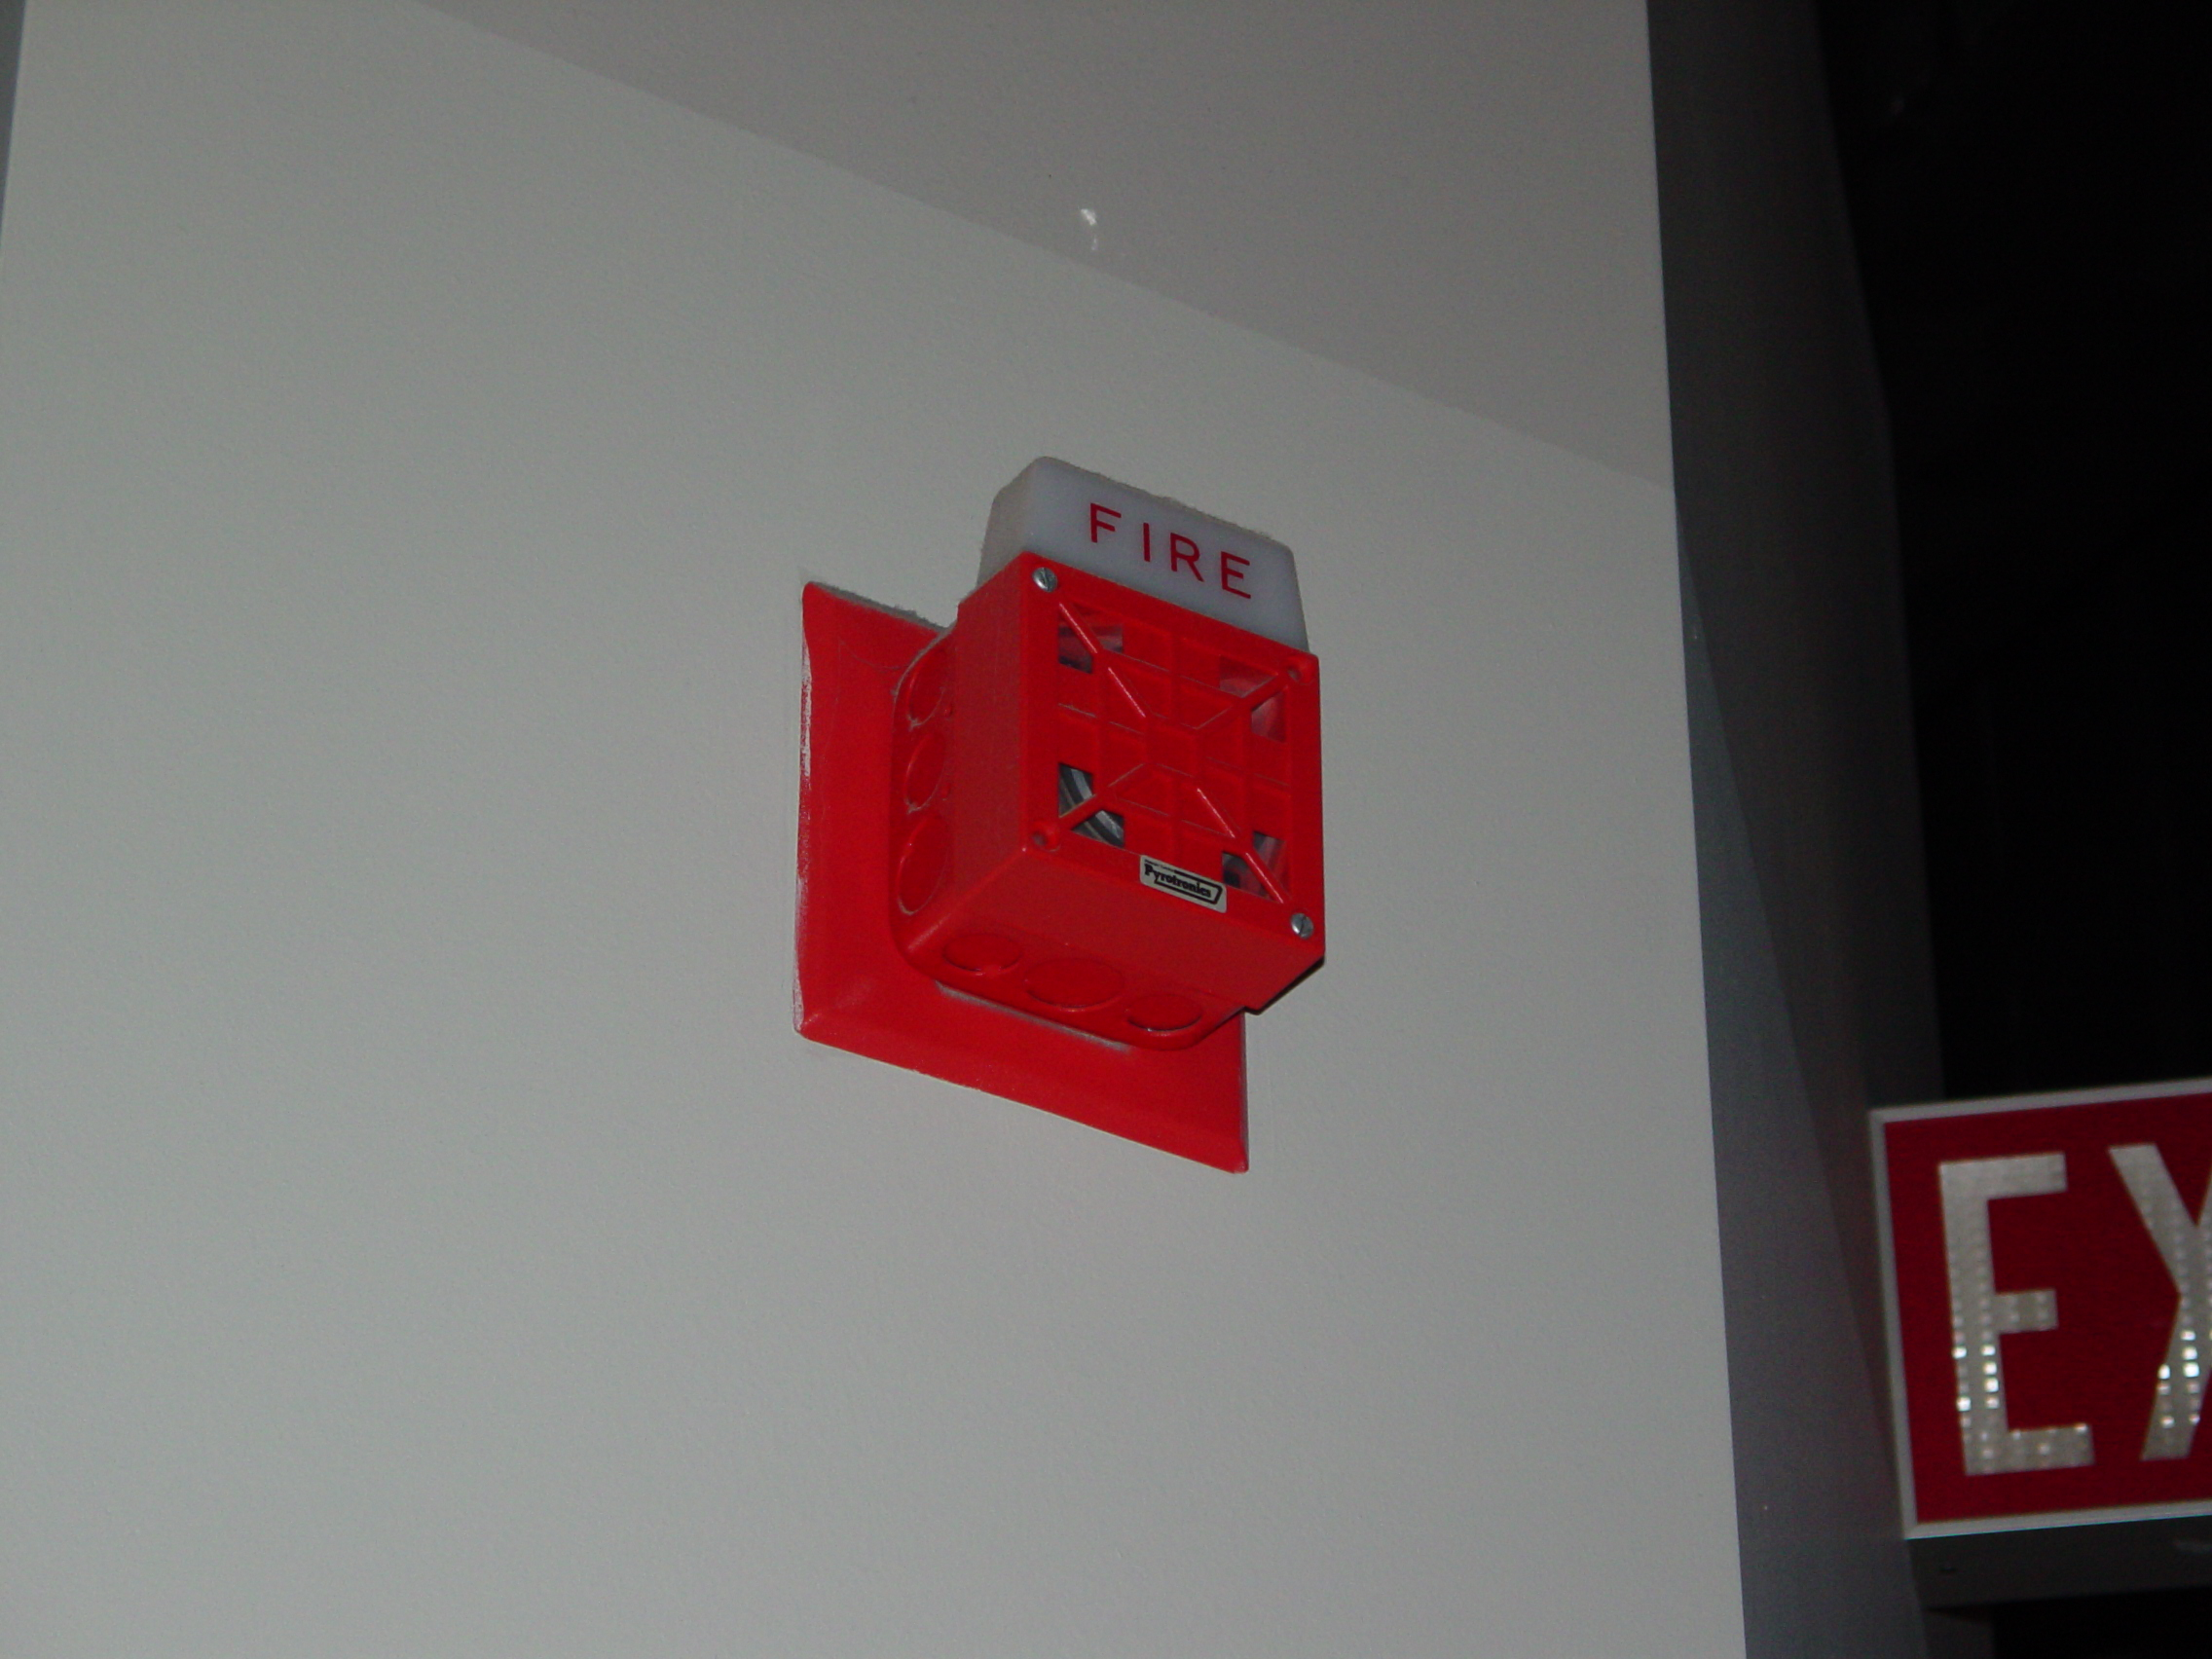 Photoelectric Smoke Detector in addition Watch in addition Alarm Where Are Your Risks And Issues Monitored further Image Piezo Alarm Siren moreover Wichita Falls Residents Express Concern Over Sirens Not Being Utilized Wednesday Night. on fire alarm with siren sound